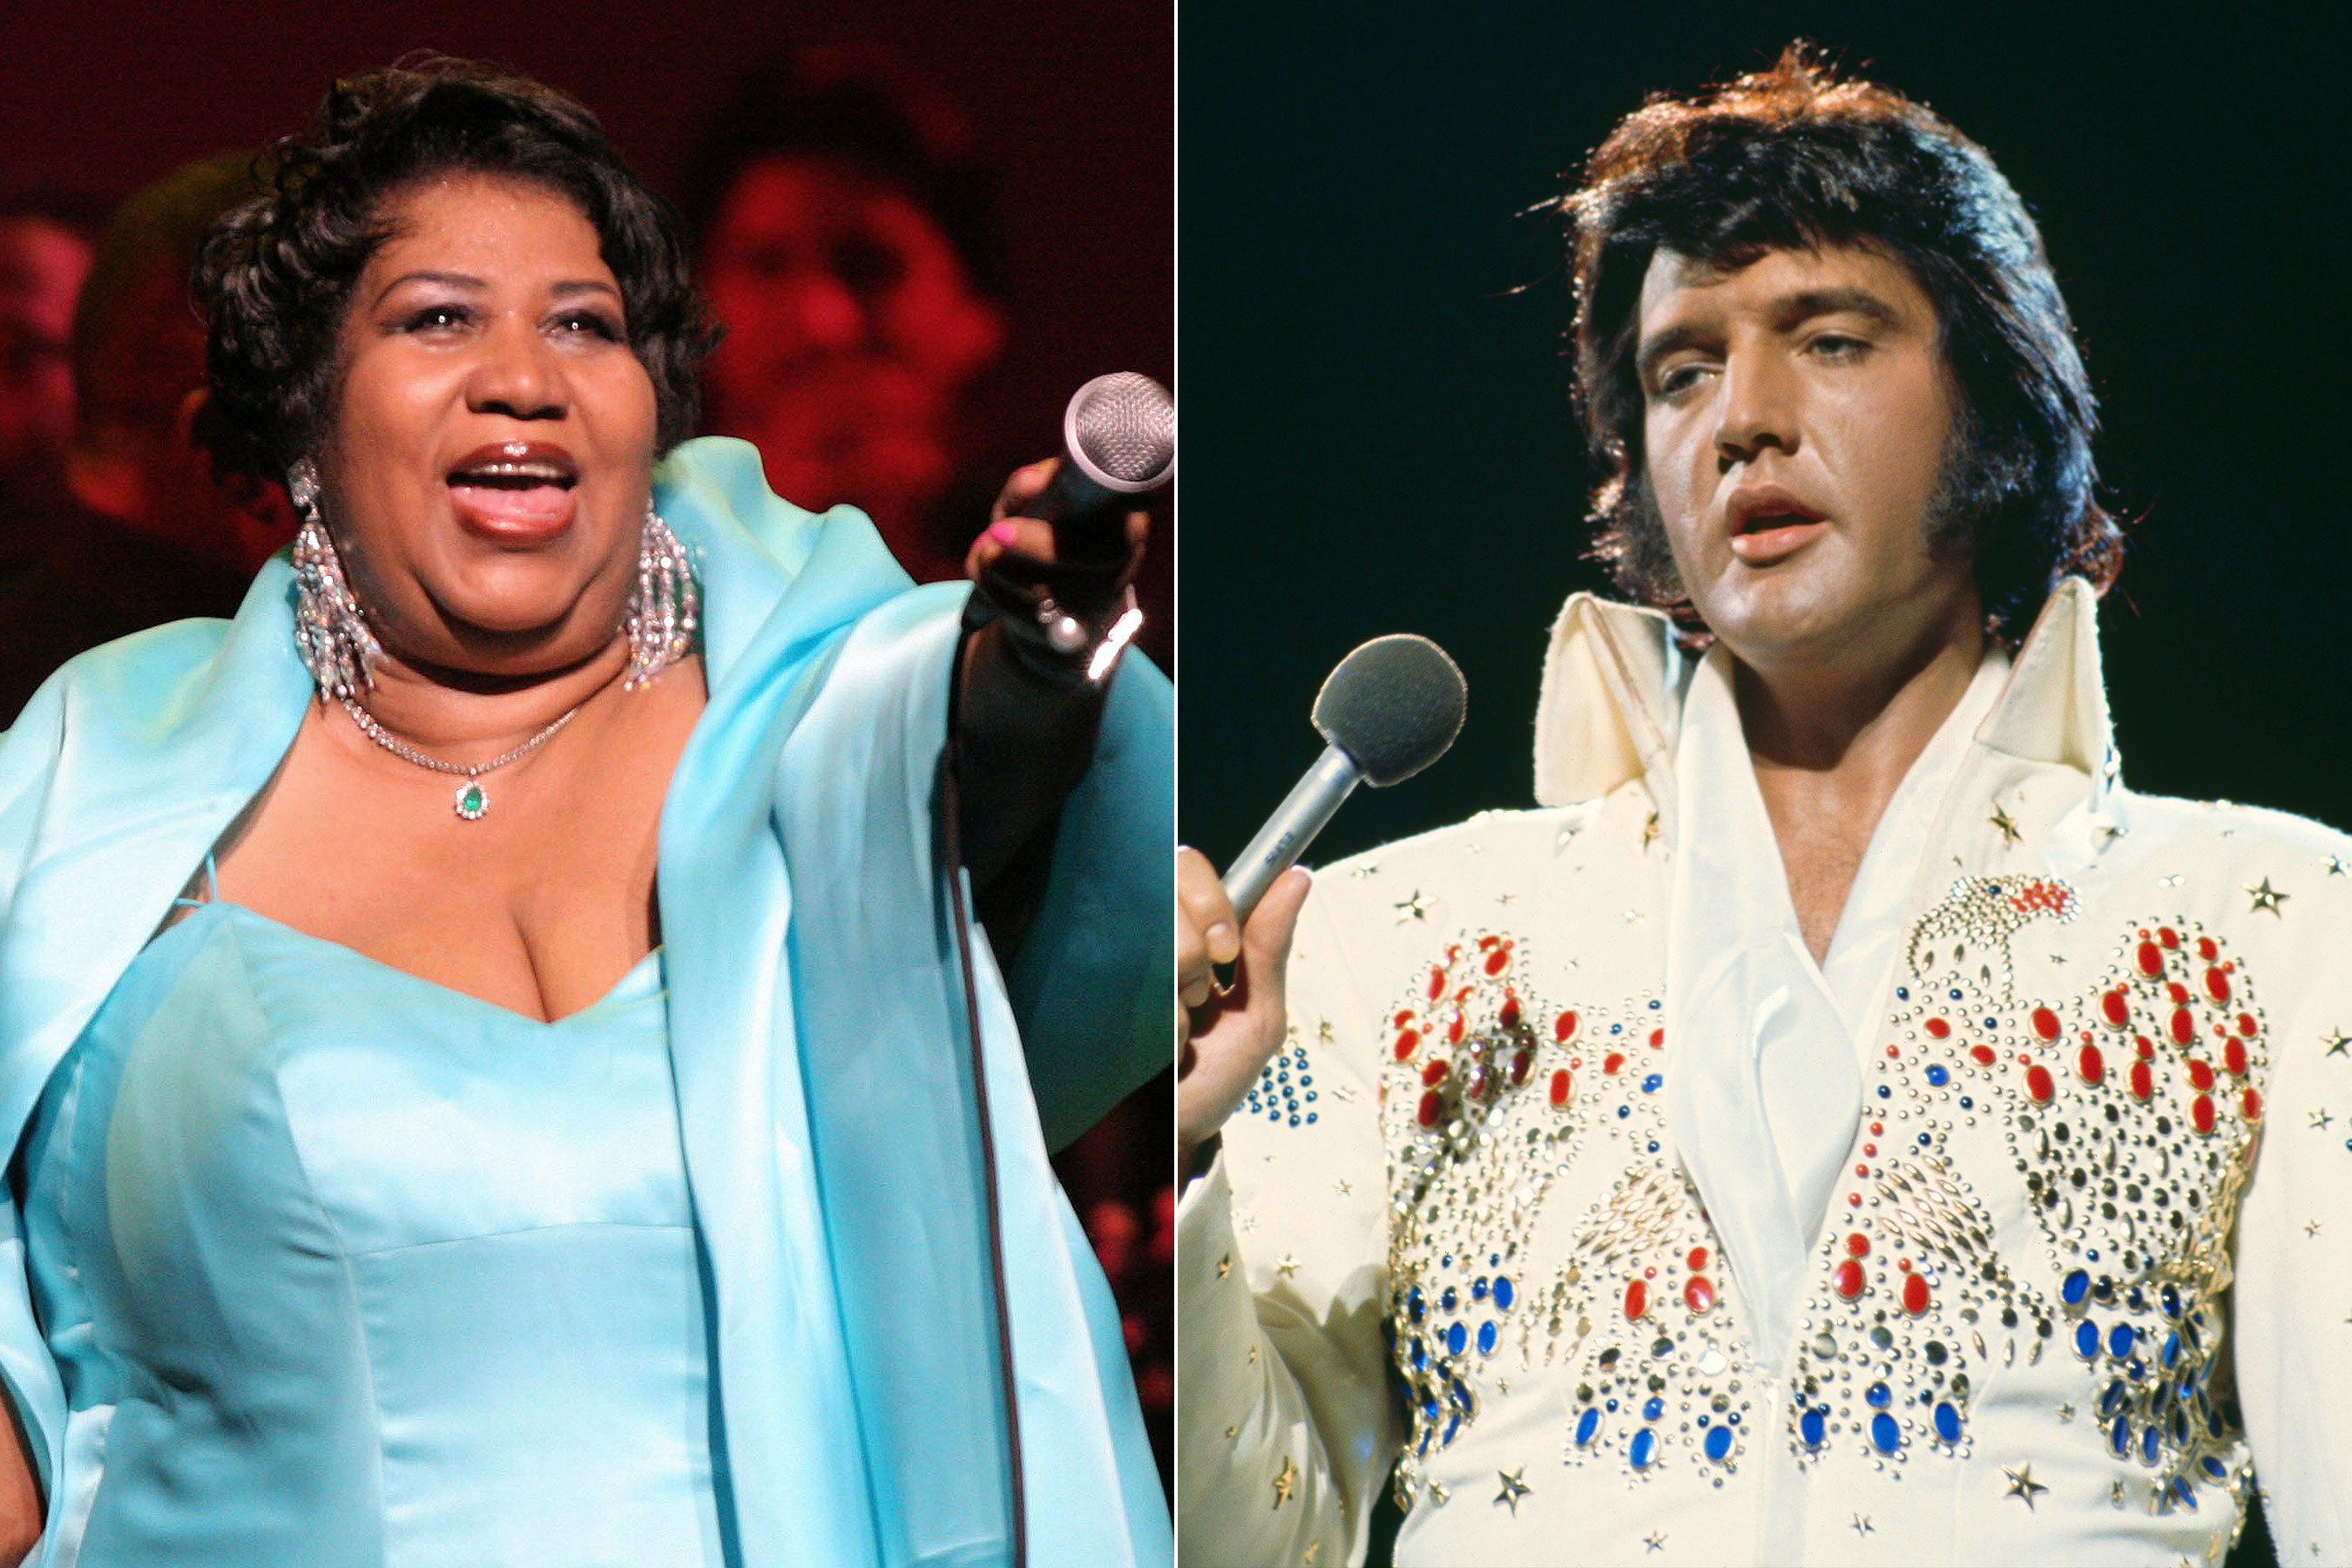 Aretha Franklin Died the Same Day as Elvis Presley - TWO BEES